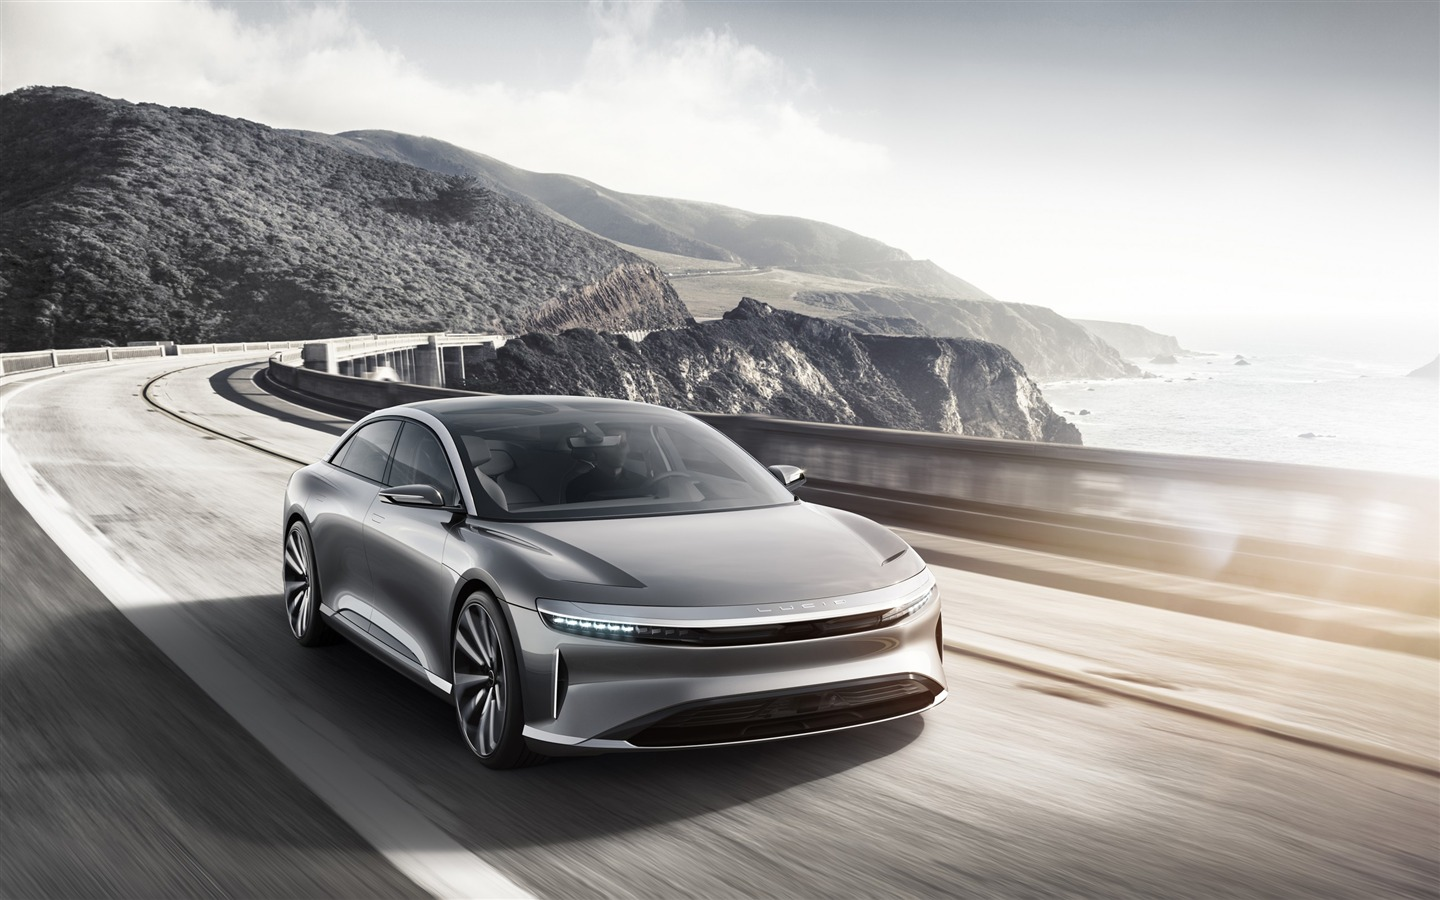 Lucid air luxury electric car-Brand Car HD Wallpaper - 1440x900 wallpaper download